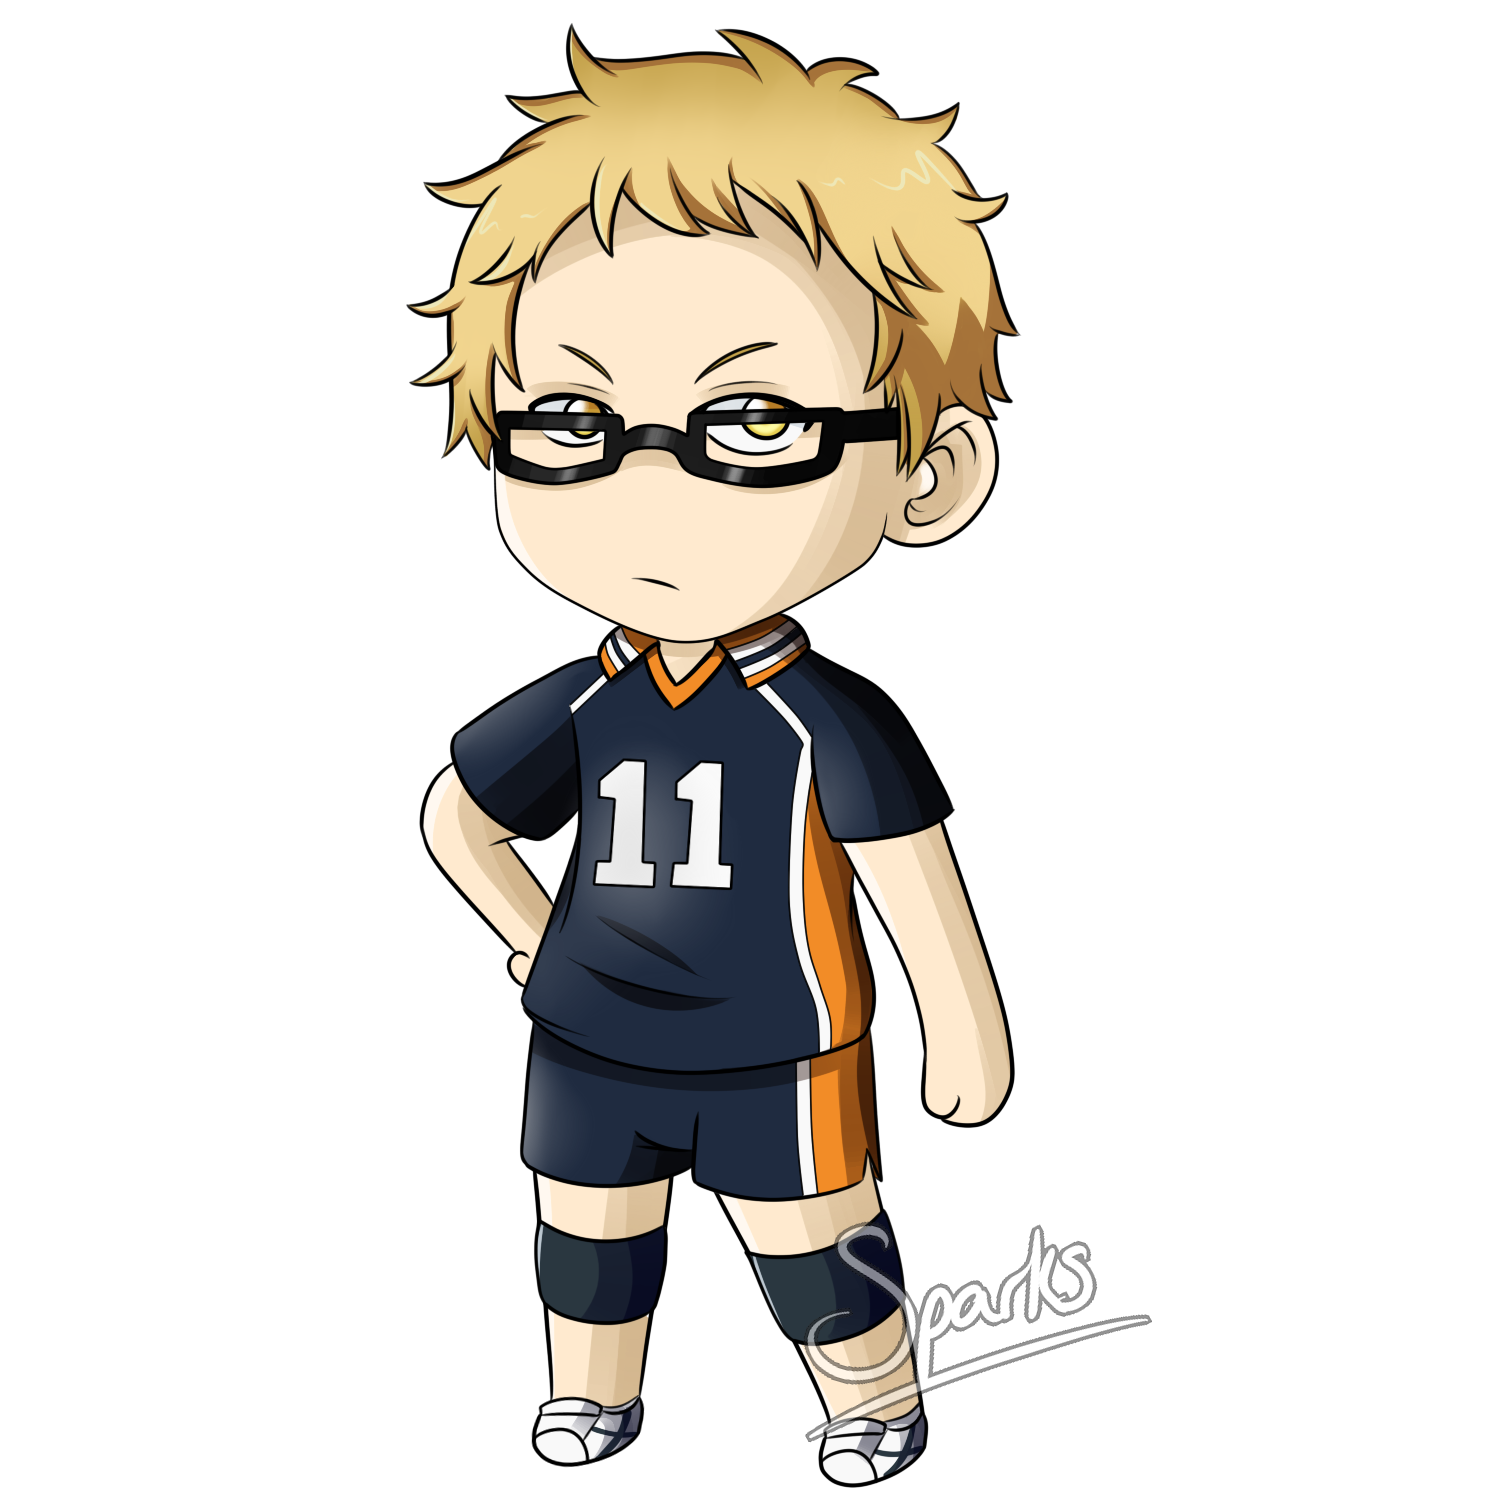 Tsukishima Kei Chibi by SparksReactor on DeviantArt.